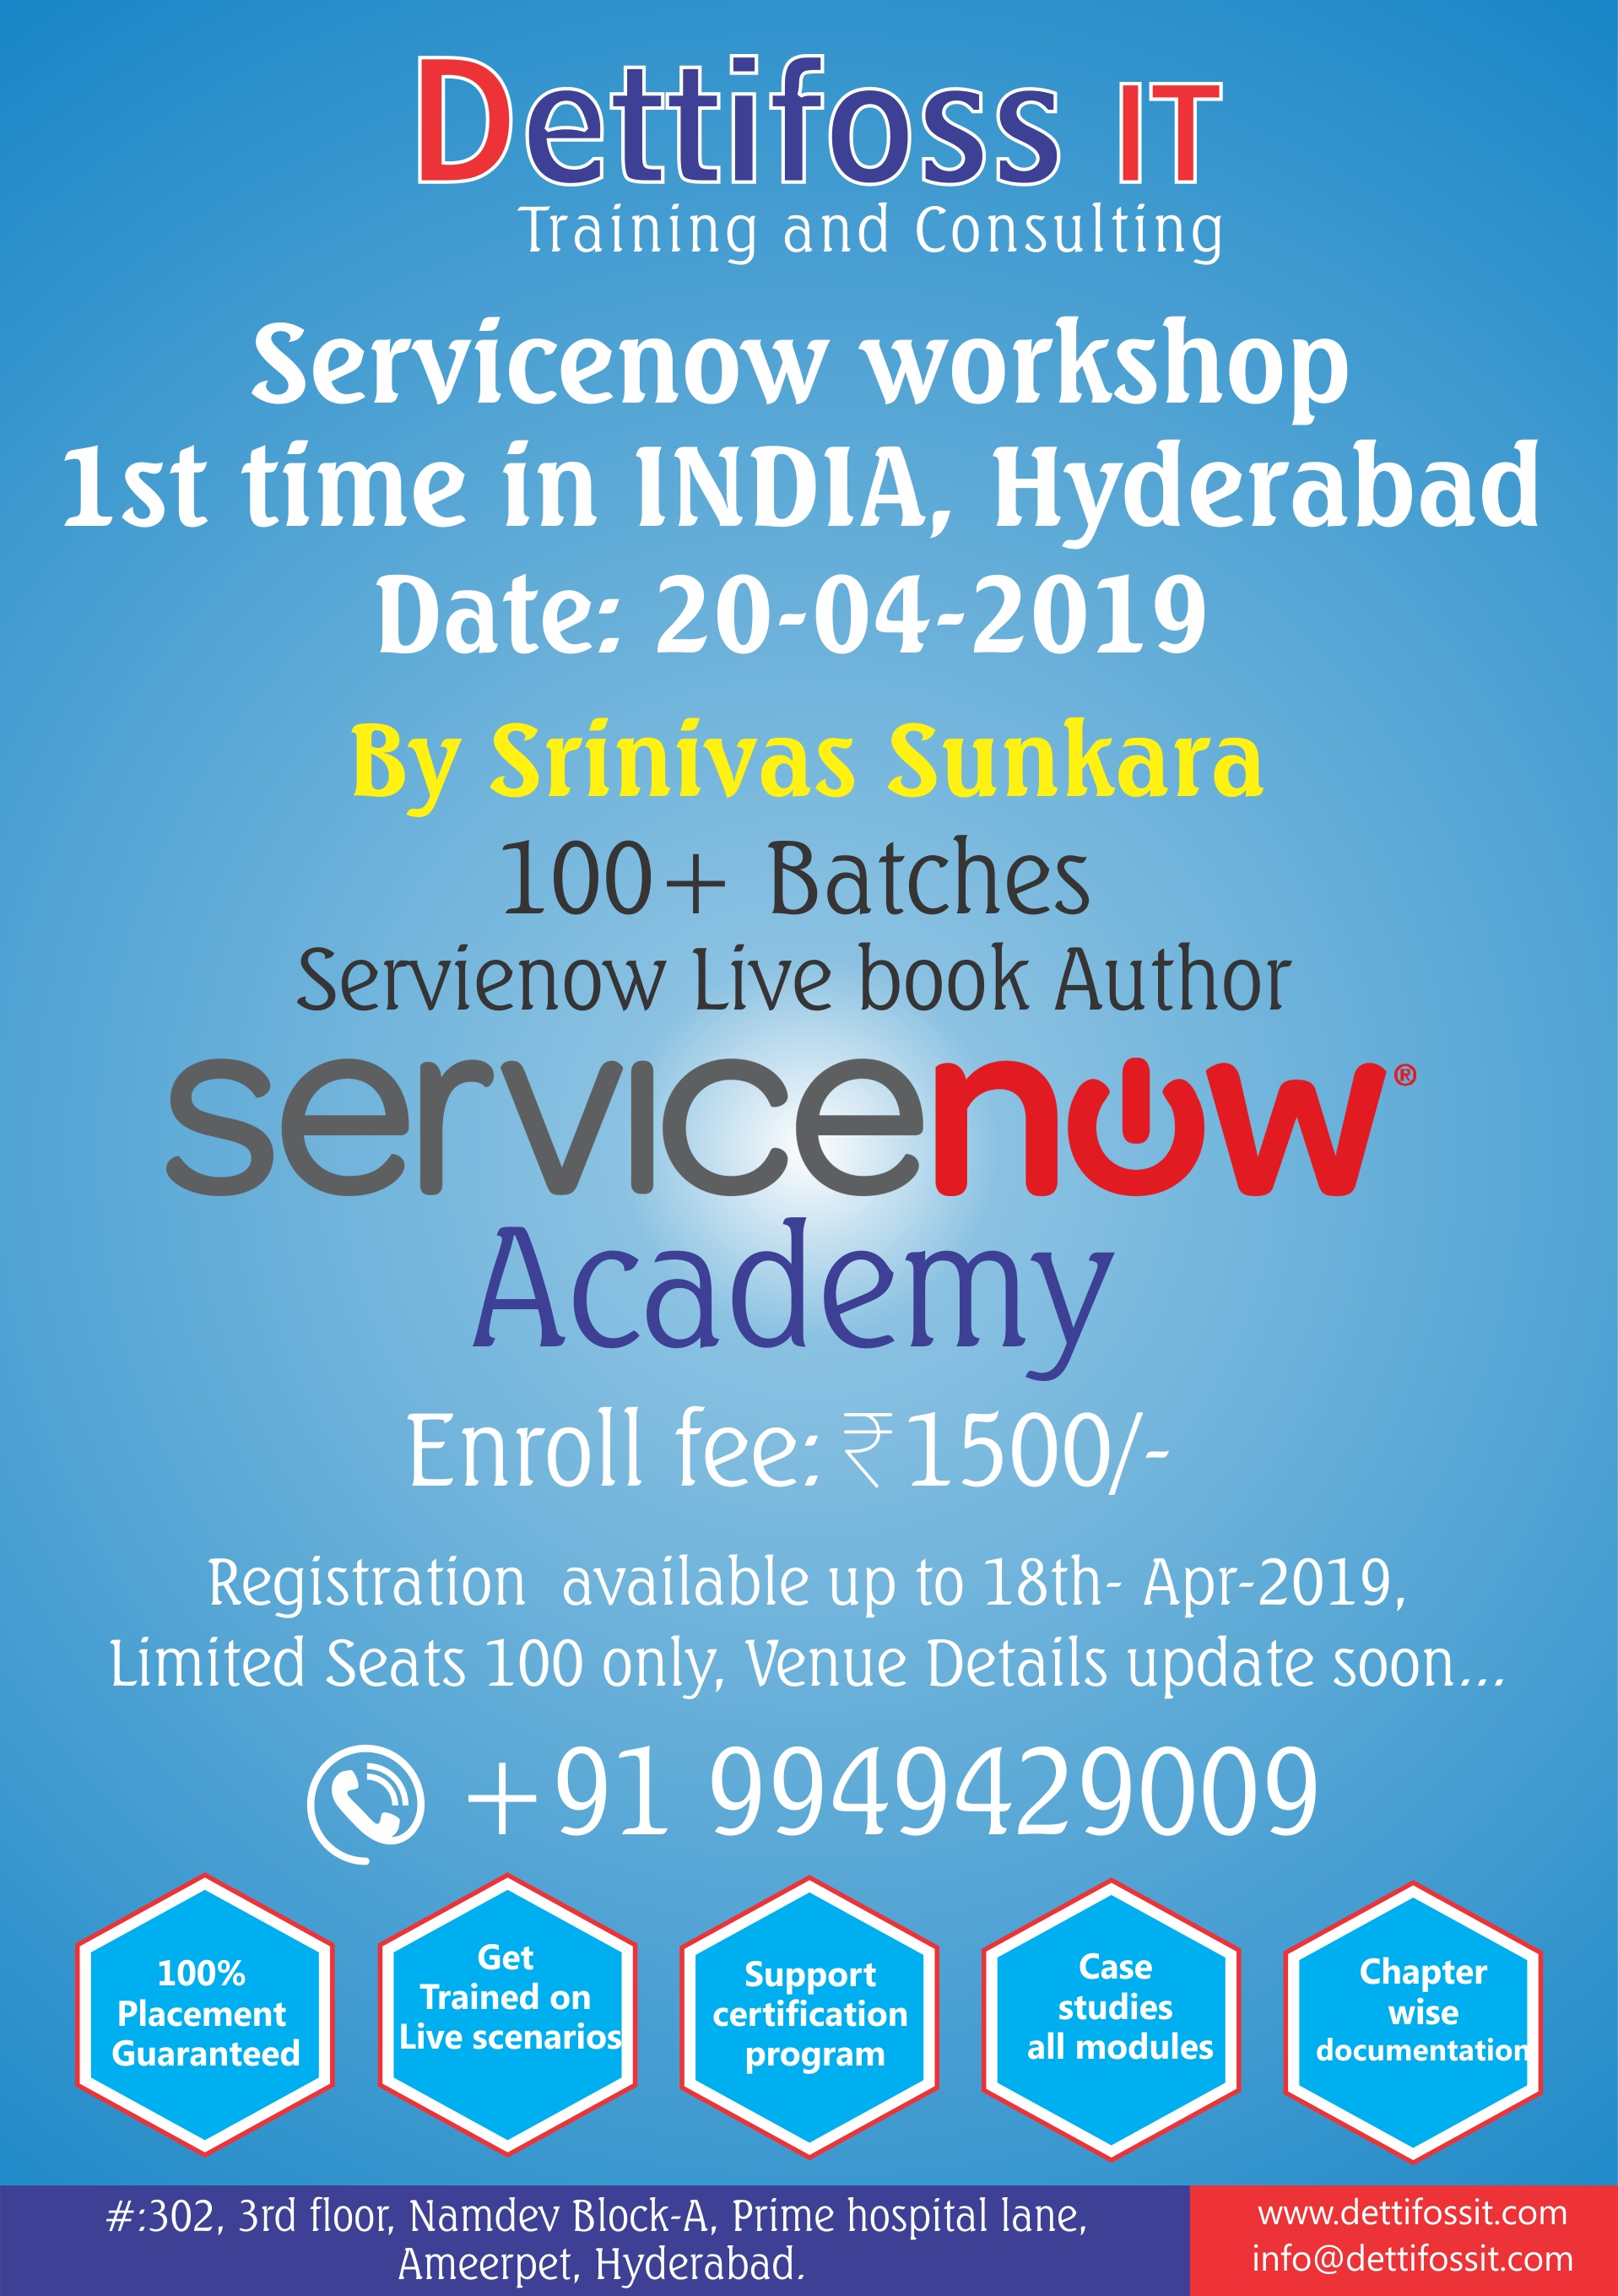 Servicenow workshop 1st time in INDIA, Hyderabad Date: 20-04-2019 By Srinivas Sunkara